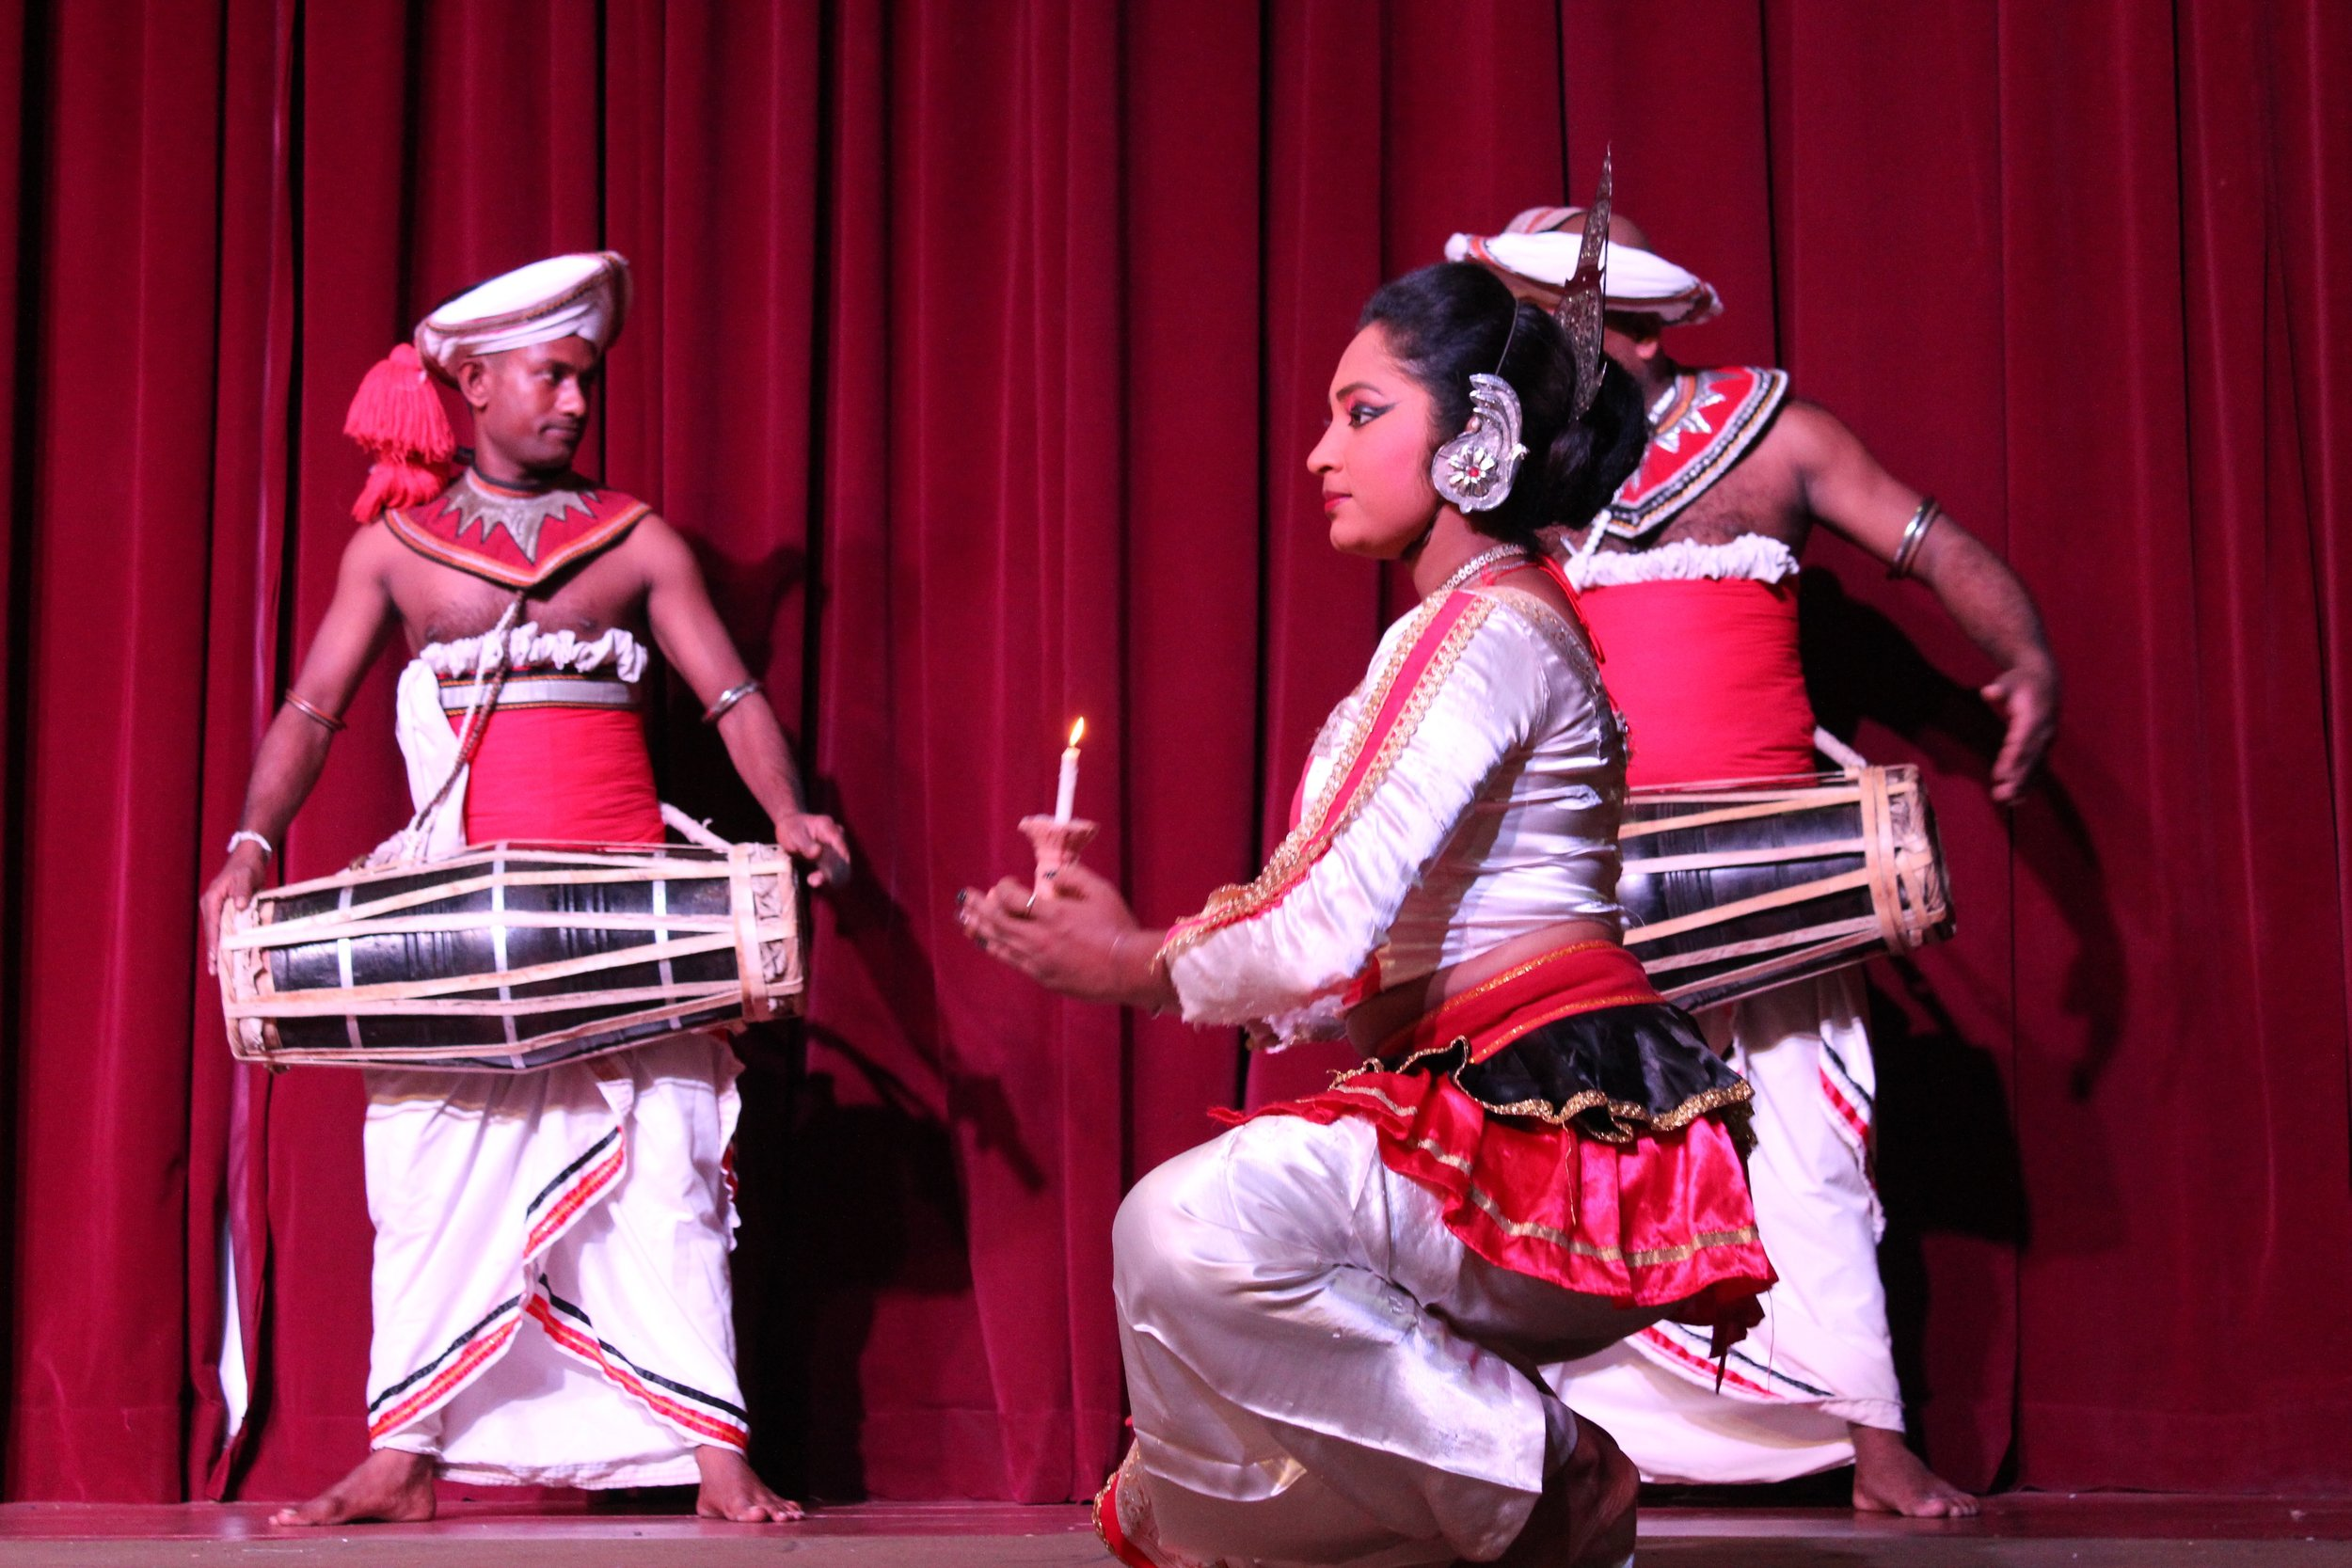 invite-to-paradise-sri-lanka-specialists-experts-travel-agent-tour-operator-kandy-cultural-dance-show-7.jpg